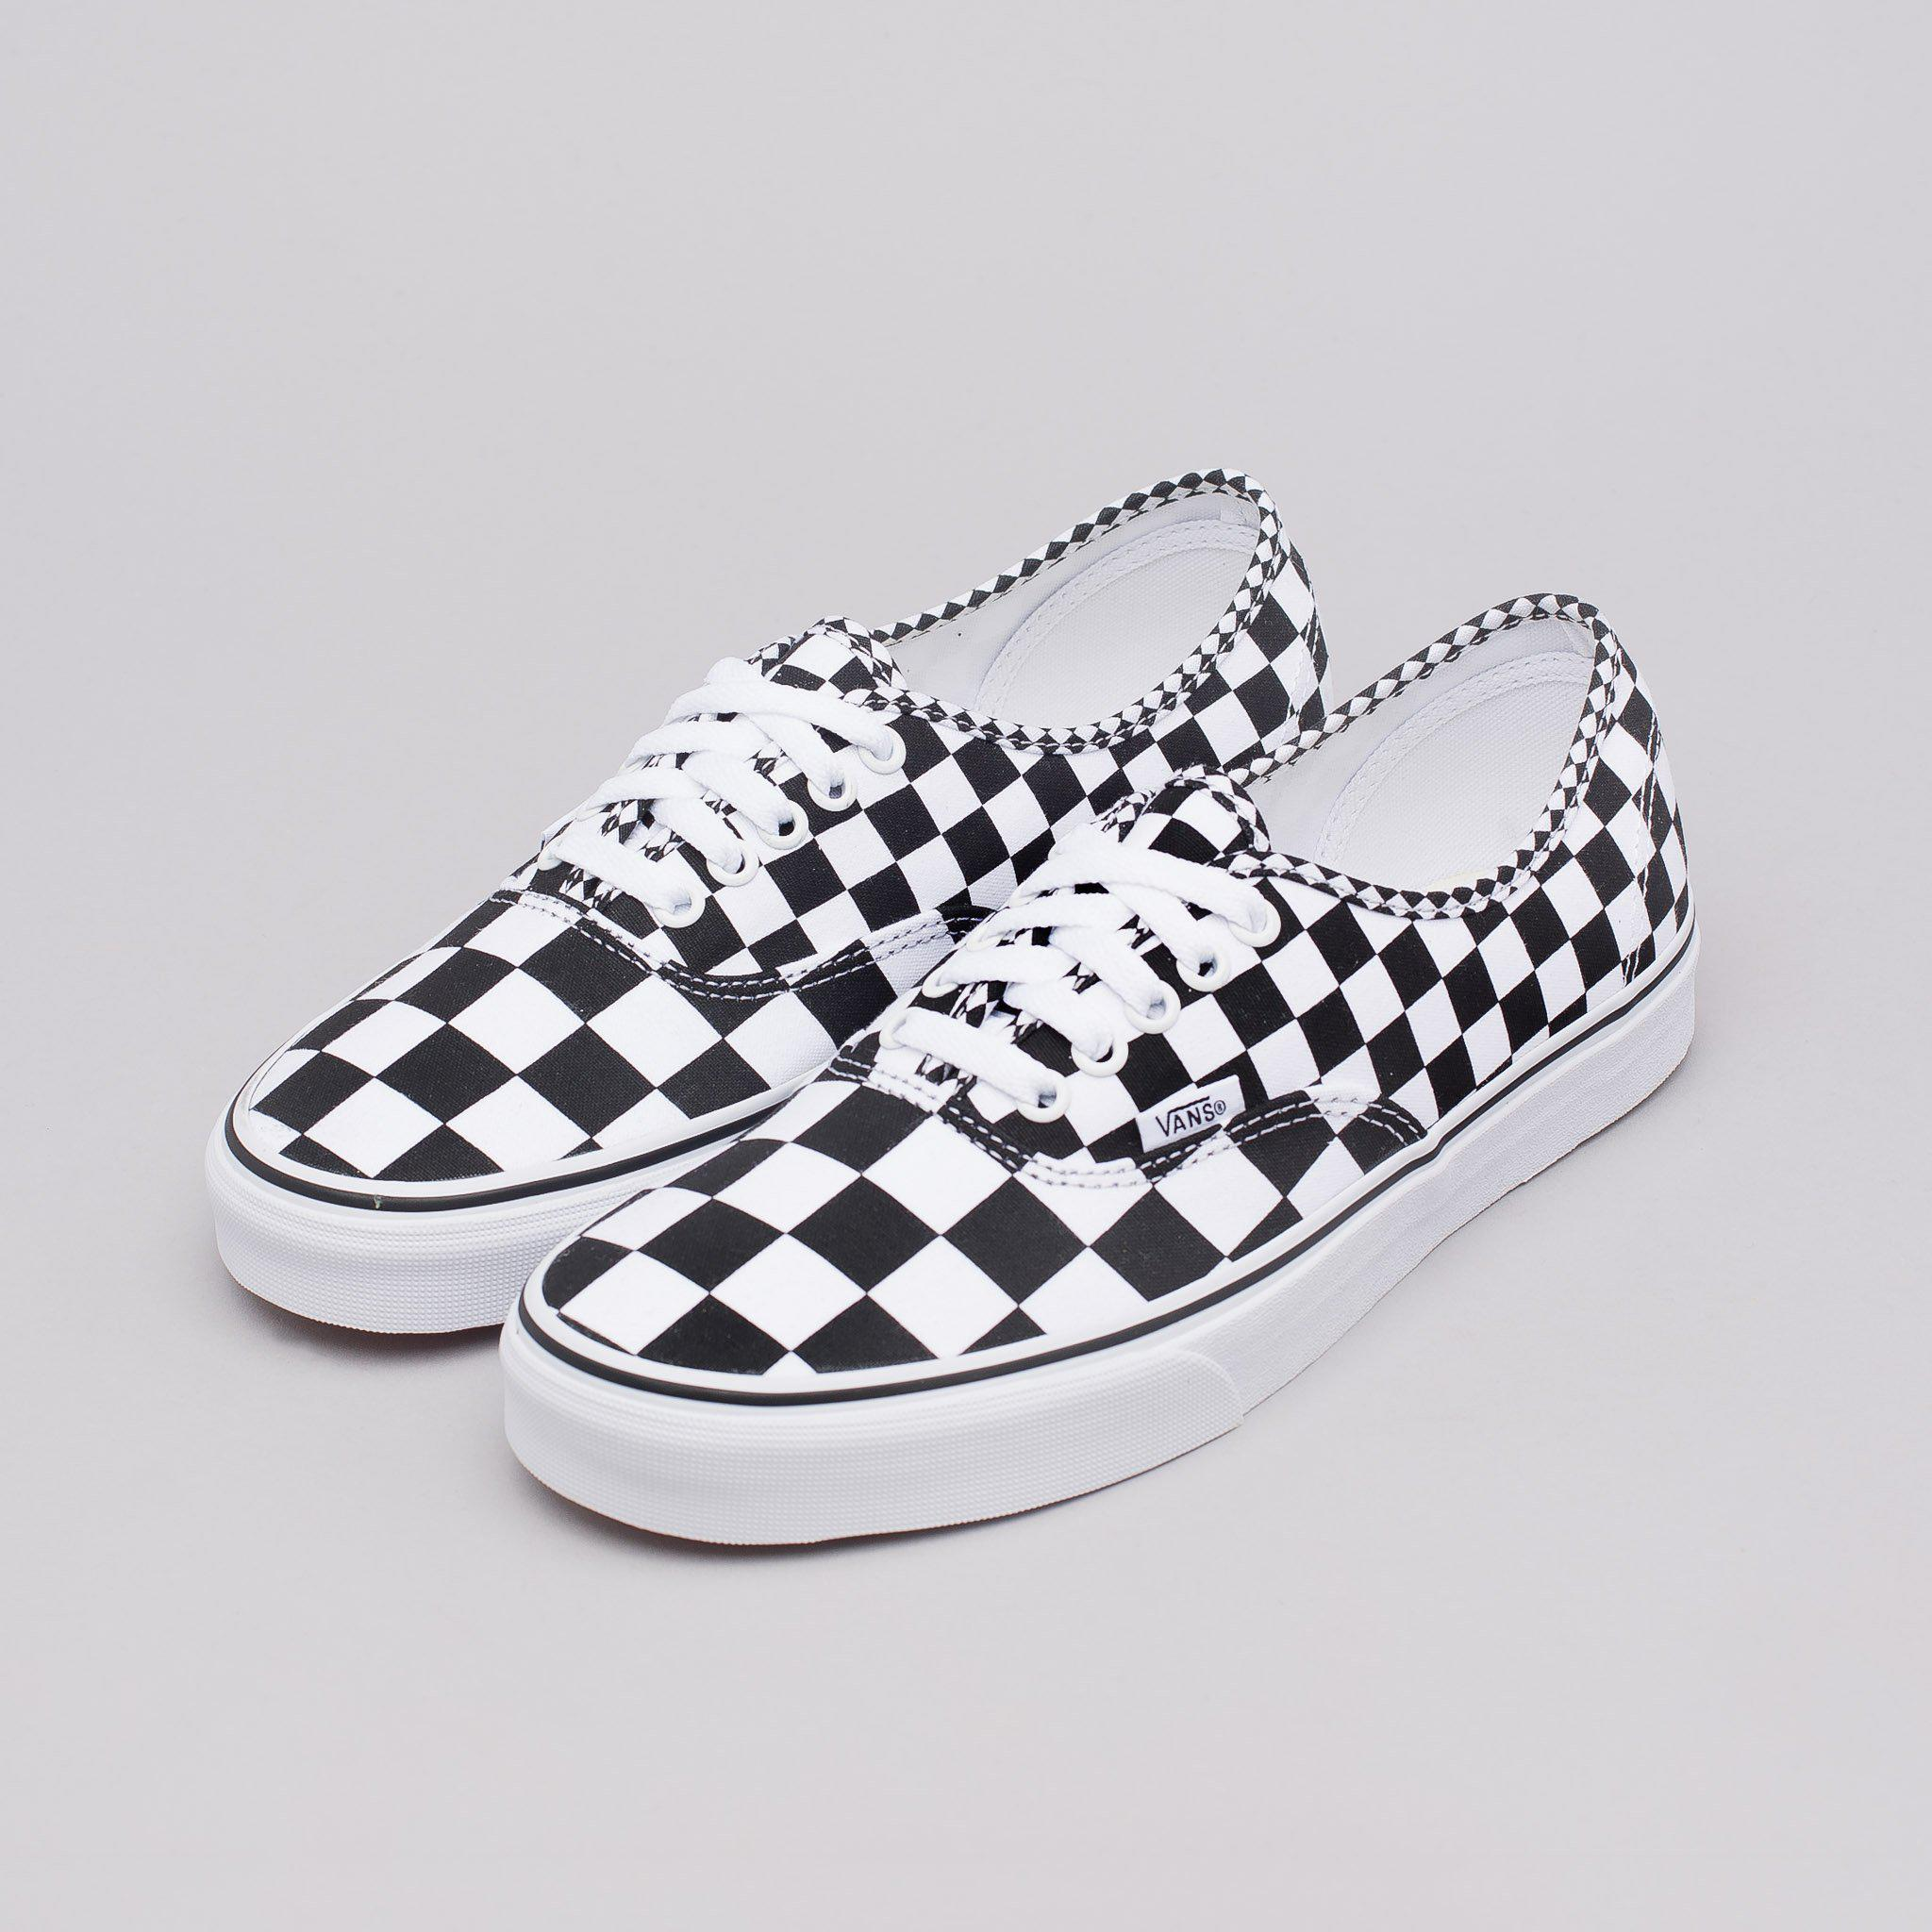 Lyst - Vans Mix Checker Authentic Shoes in White for Men c8a5fc1f9